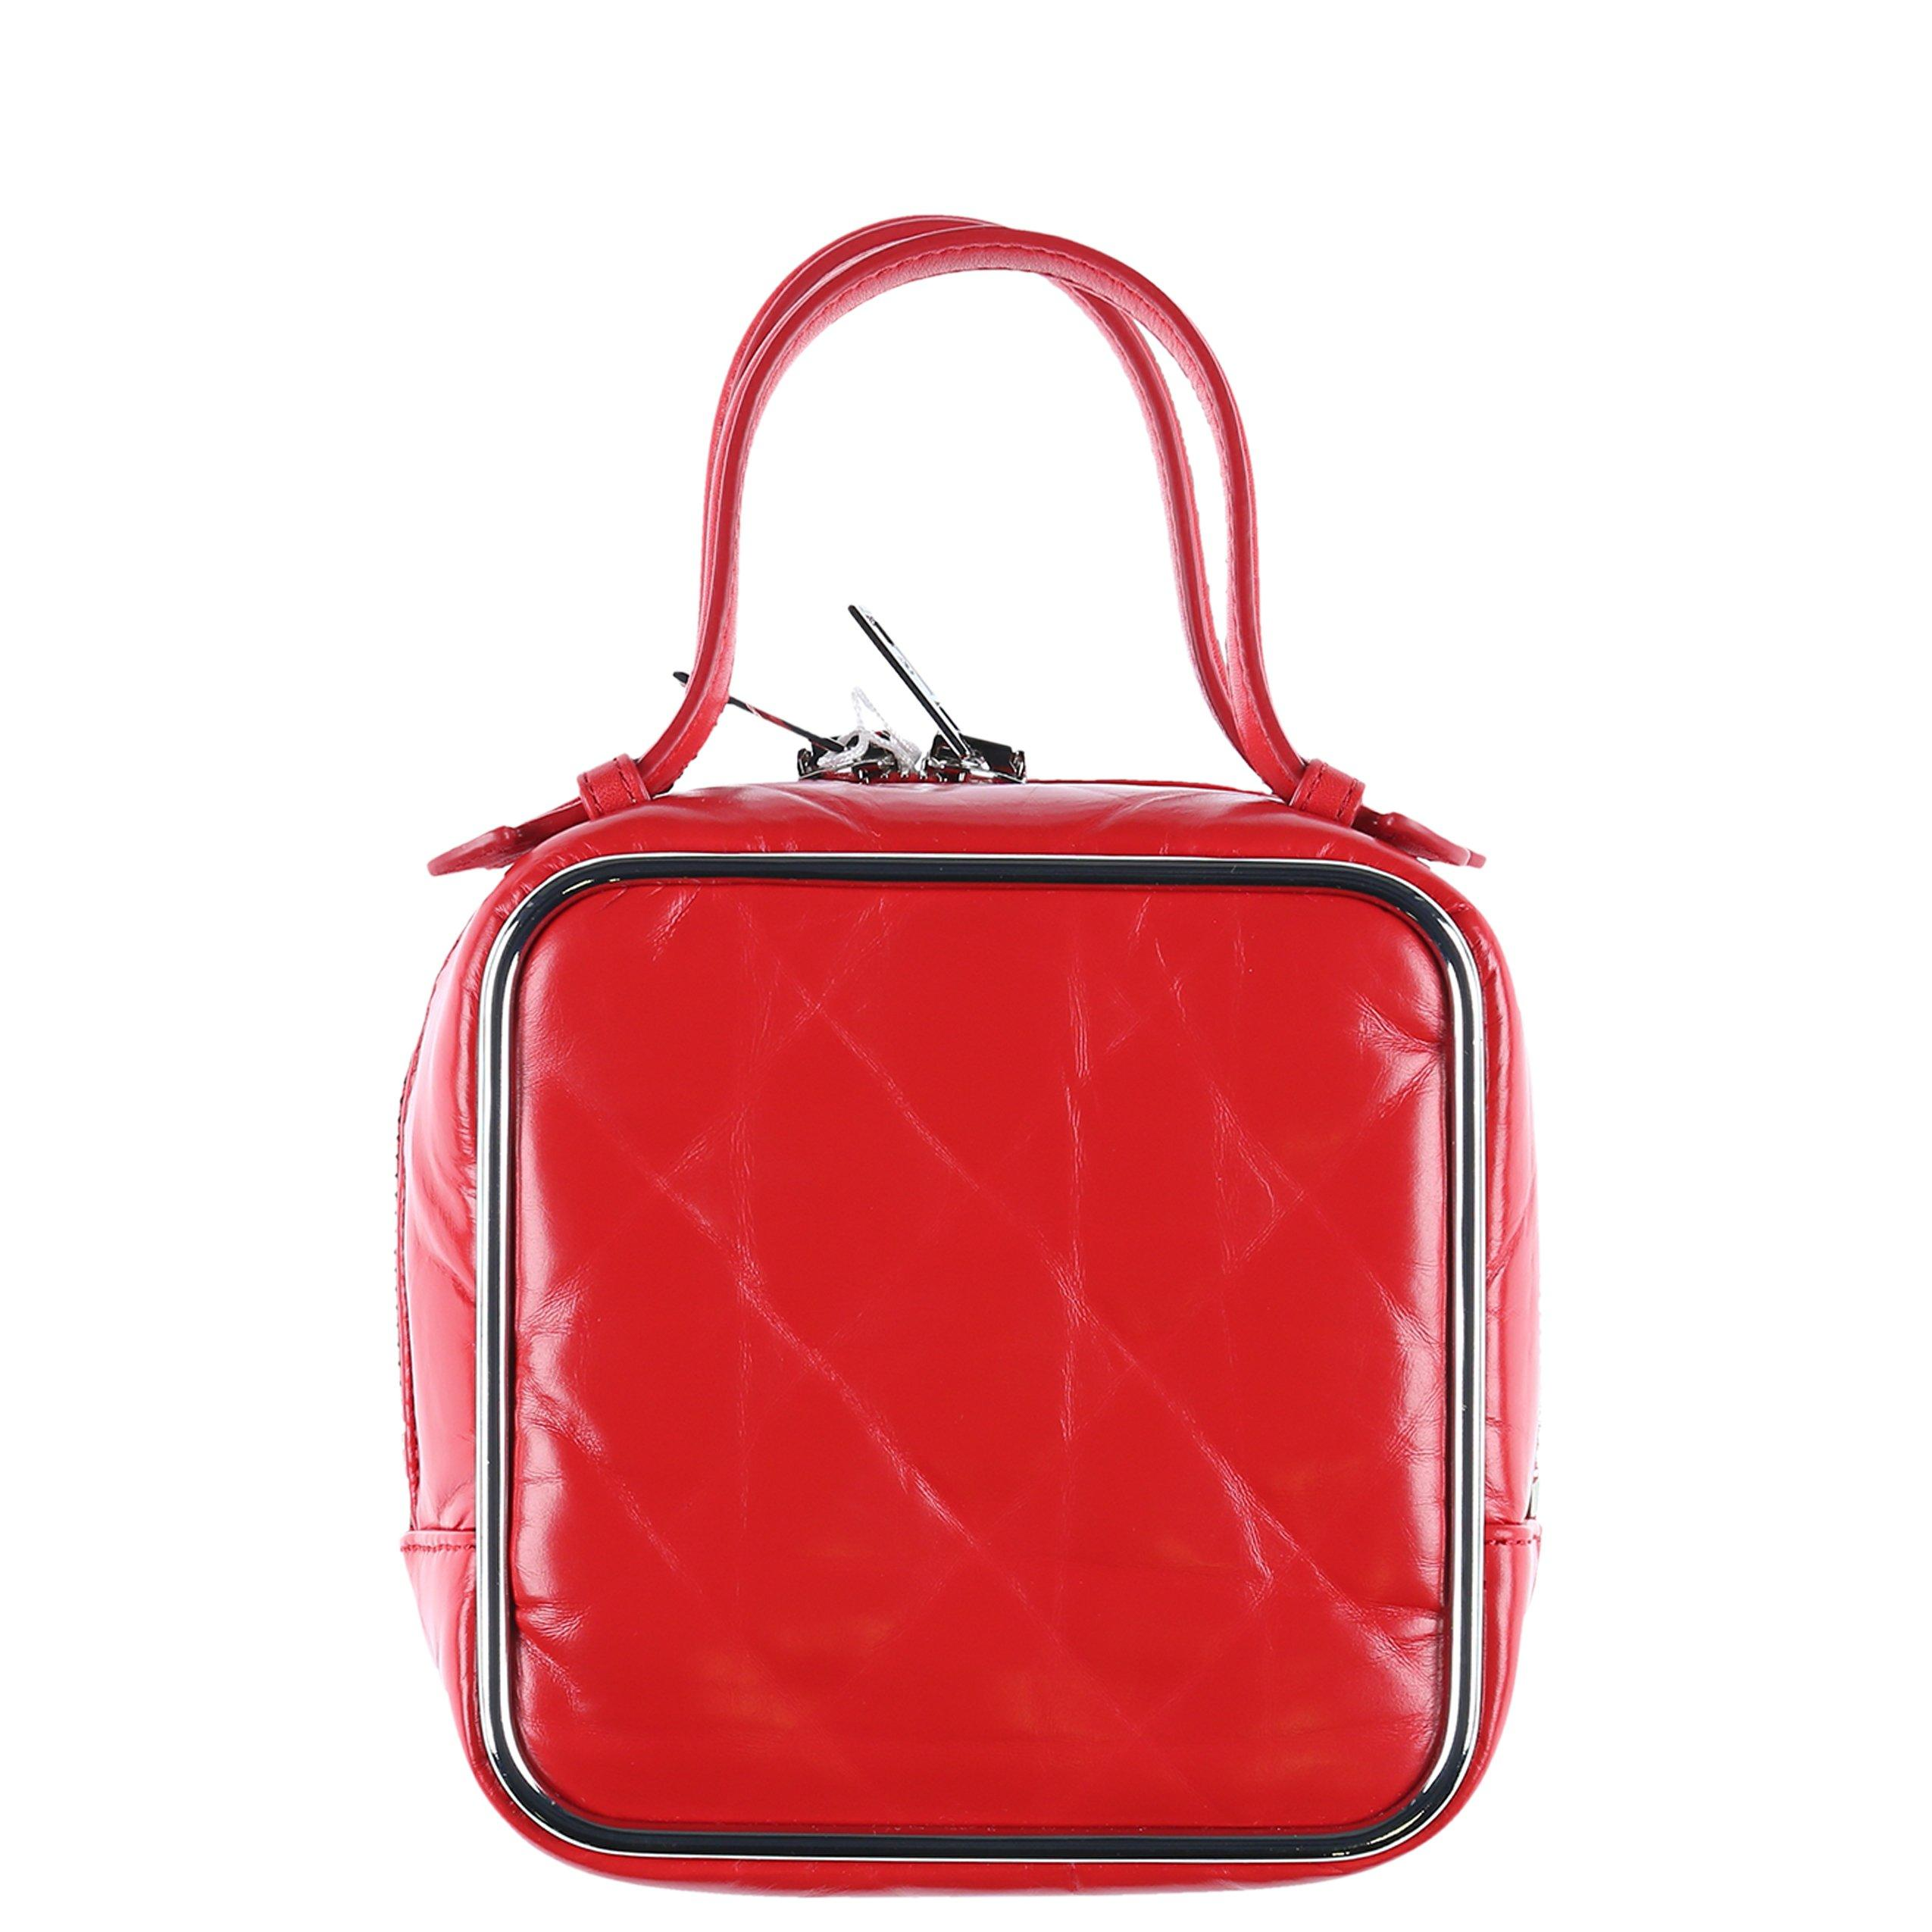 bba029d0e5bf Lyst - Alexander Wang Women s Halo Top Handle Bag in Red